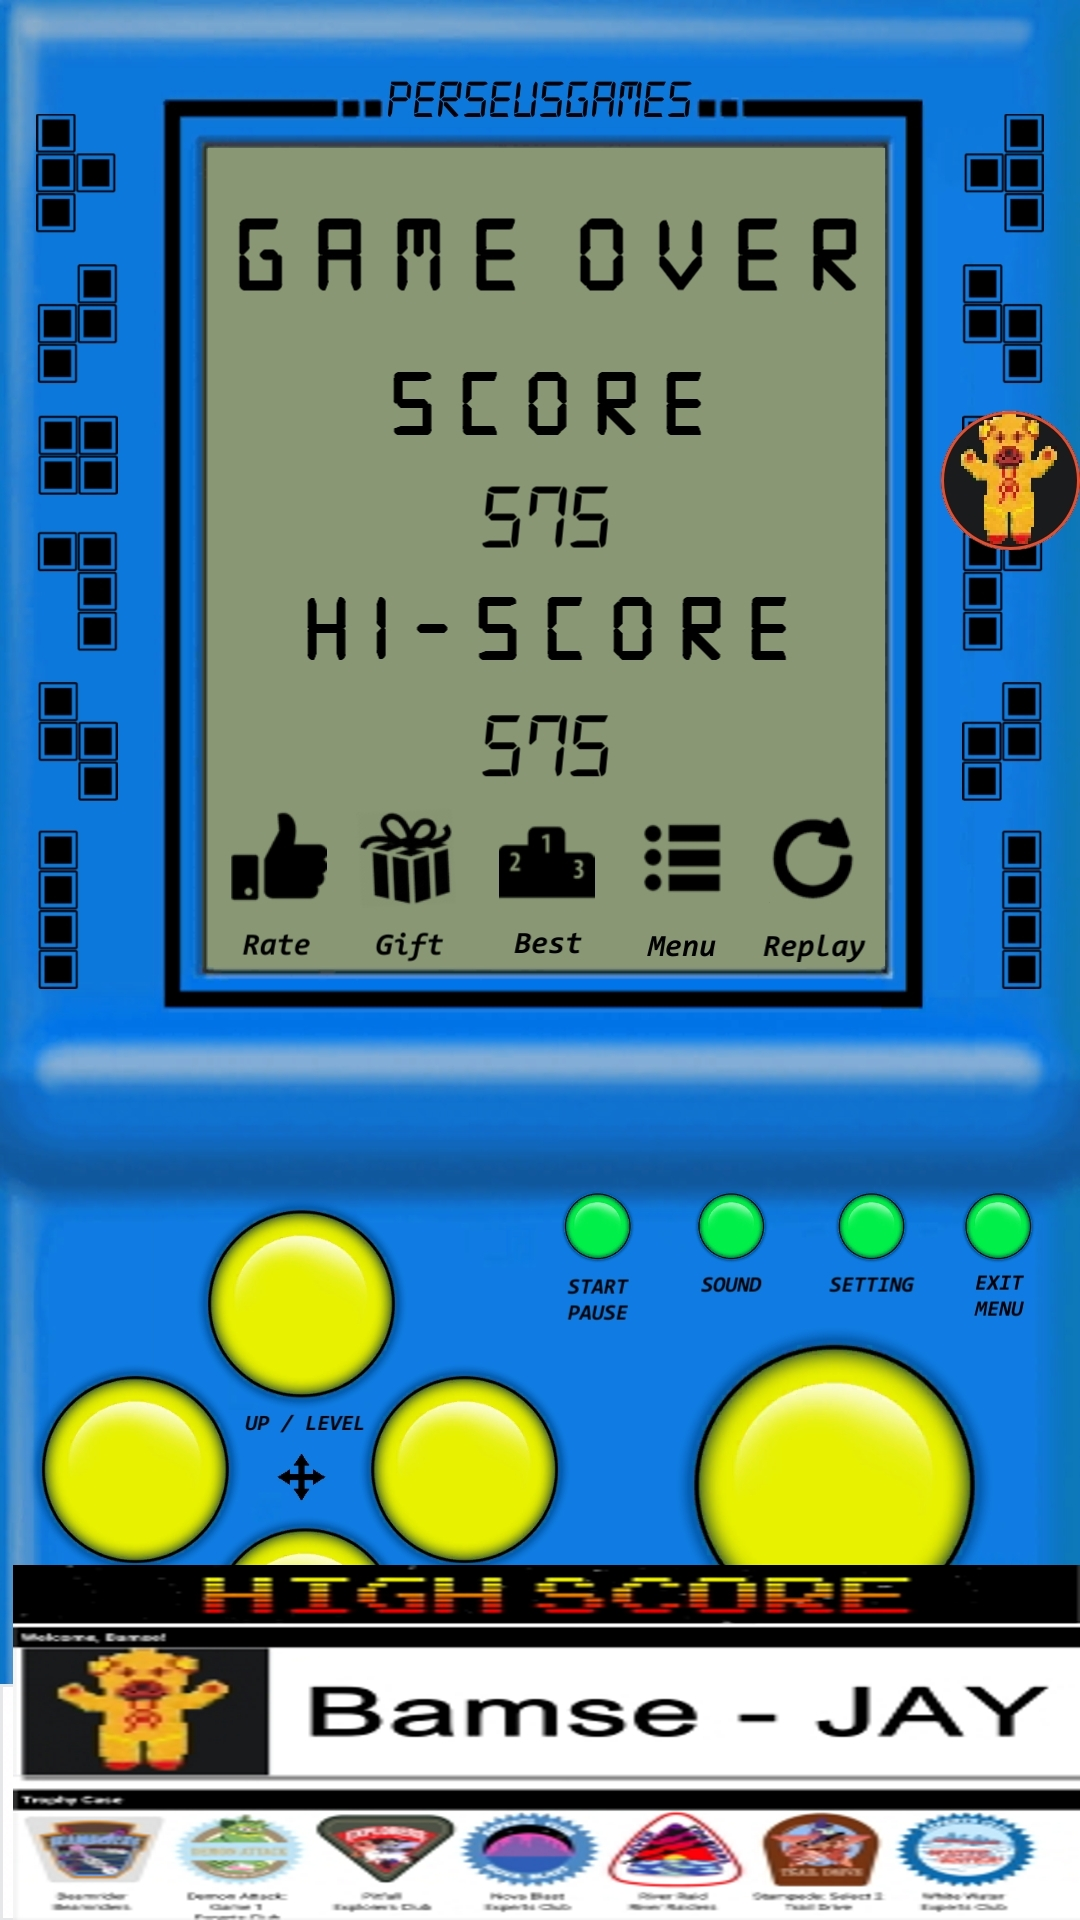 Bamse: Brick Game: Game H (Android) 575 points on 2019-12-12 15:01:16